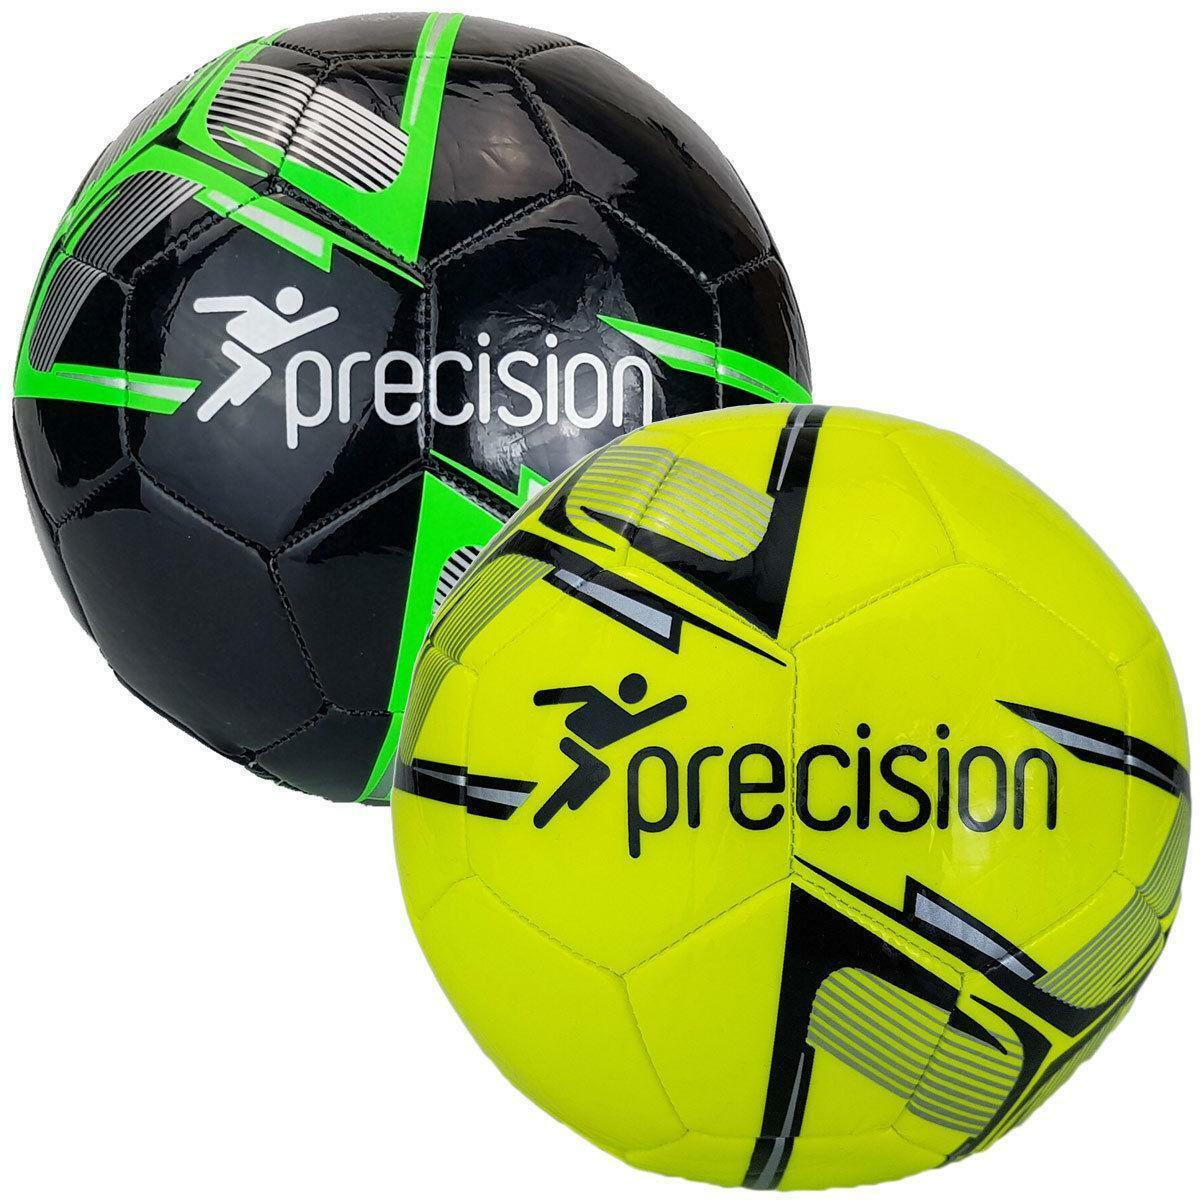 Precision Fusion Midi Training Football Football Training ffb112